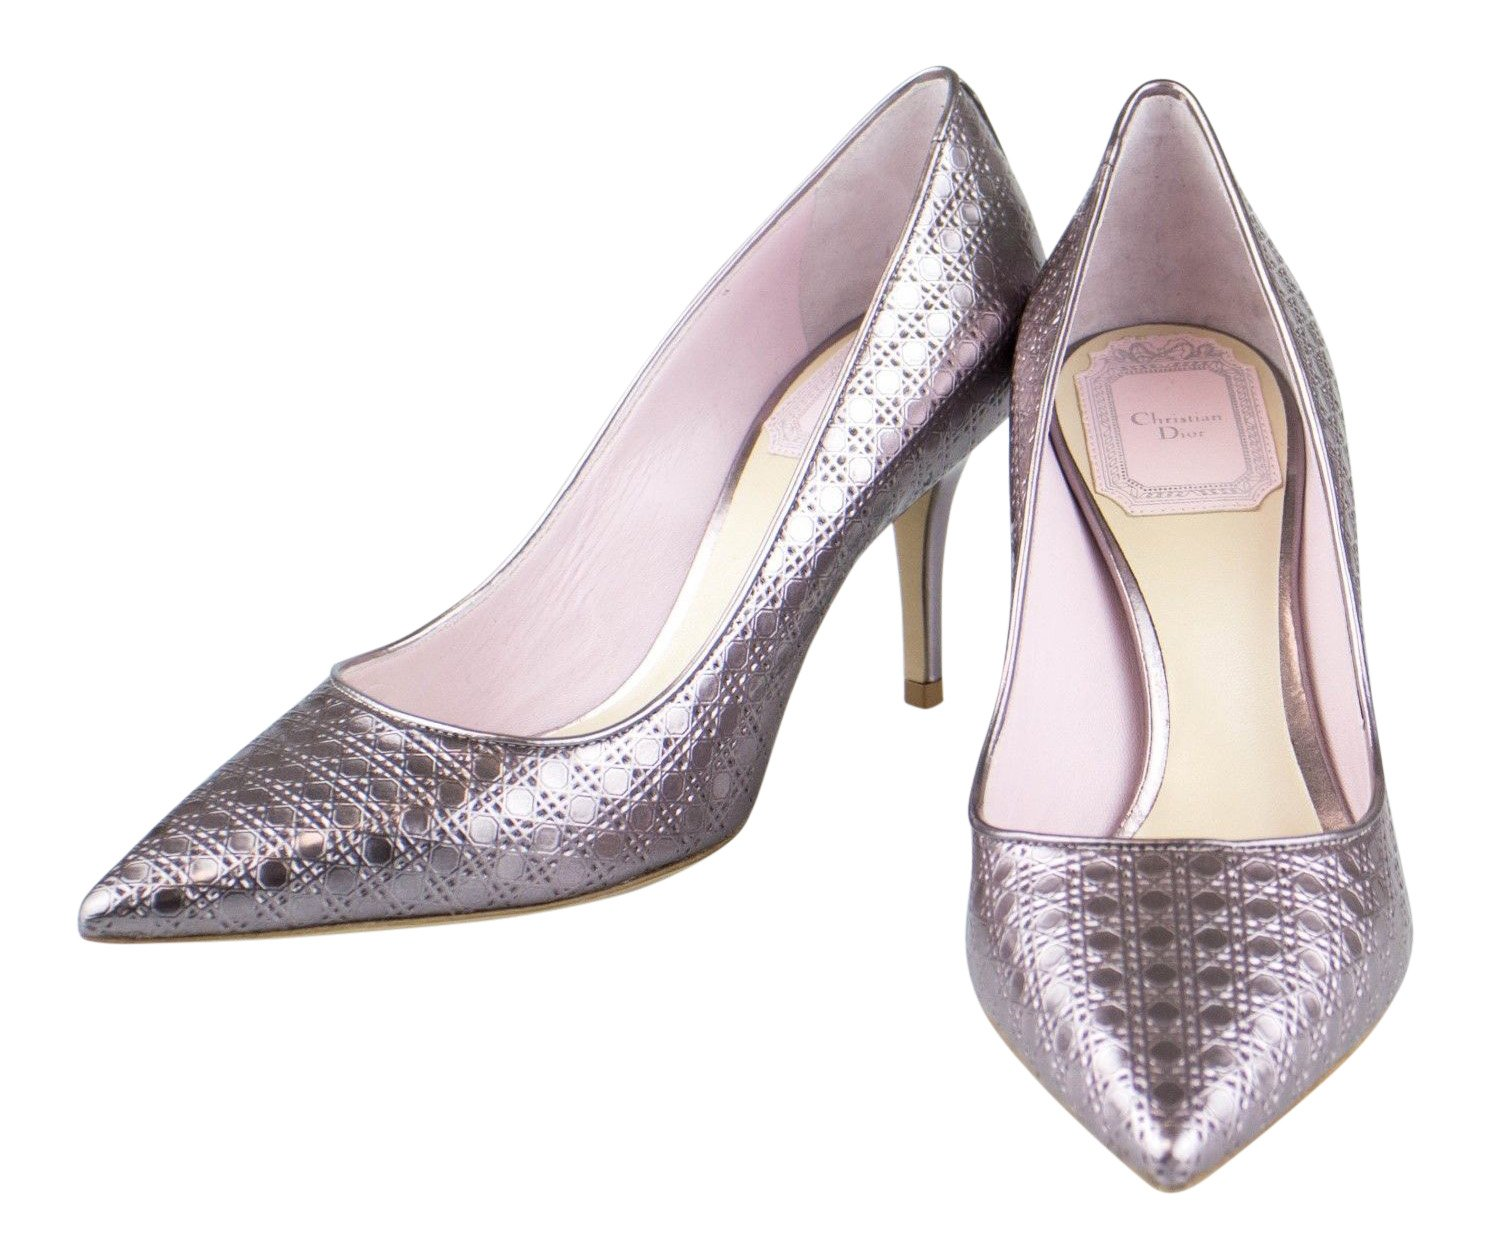 725017bd CHRISTIAN DIOR 'Cherie Cannage' Metallic Rose Pump Shoes Size 5 US ...